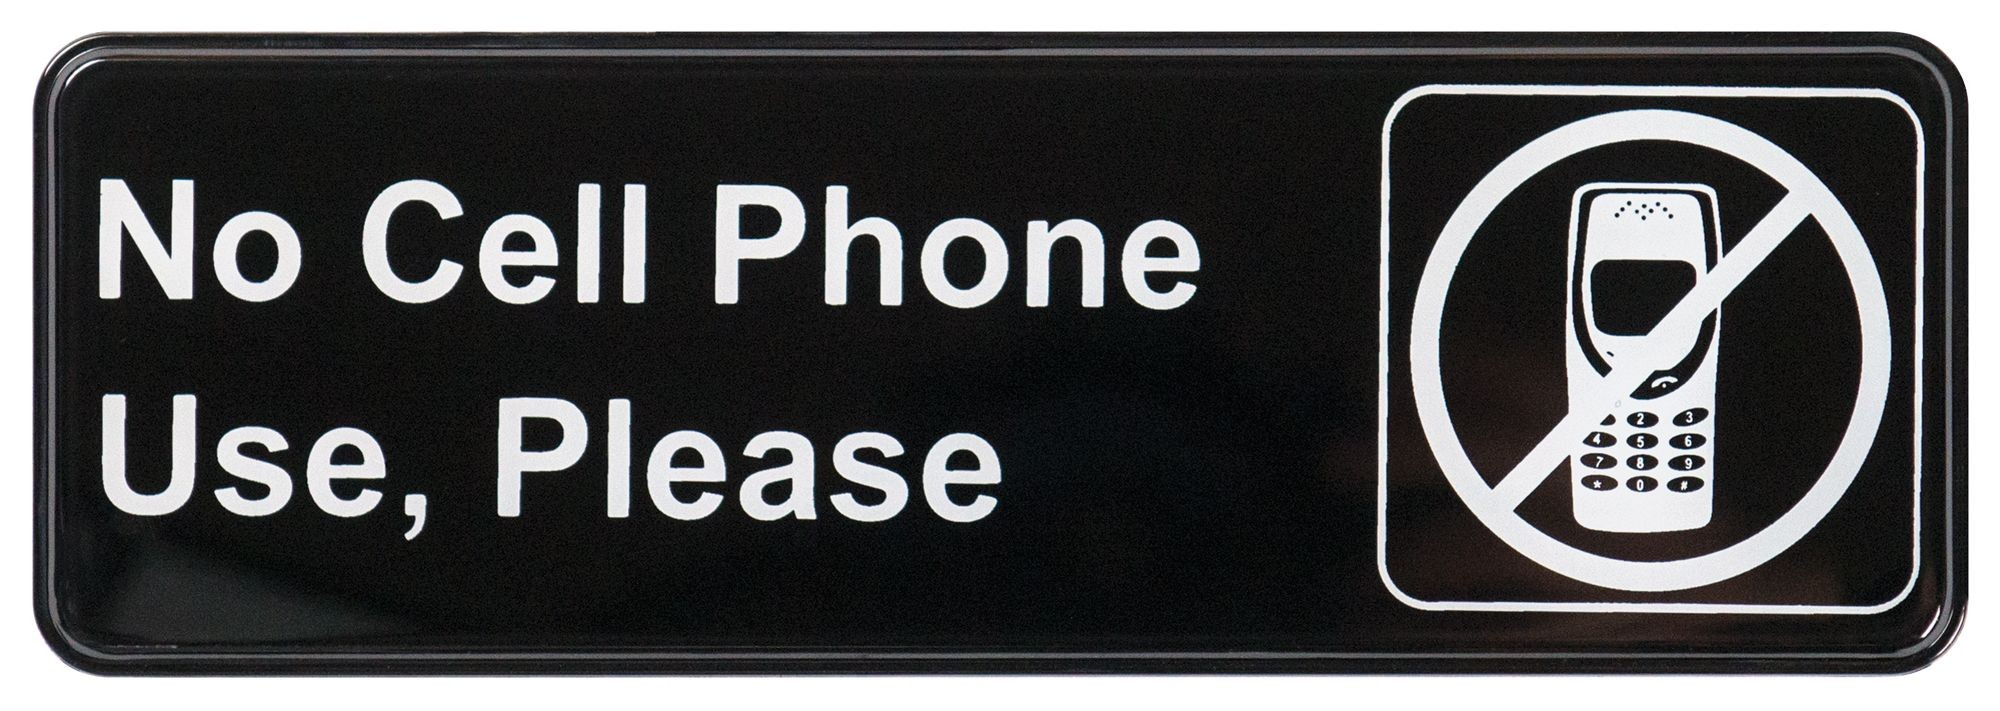 "Winco SGN-334 ""No Cell Phone Use, Please"" Information Sign 3"" x 9"""